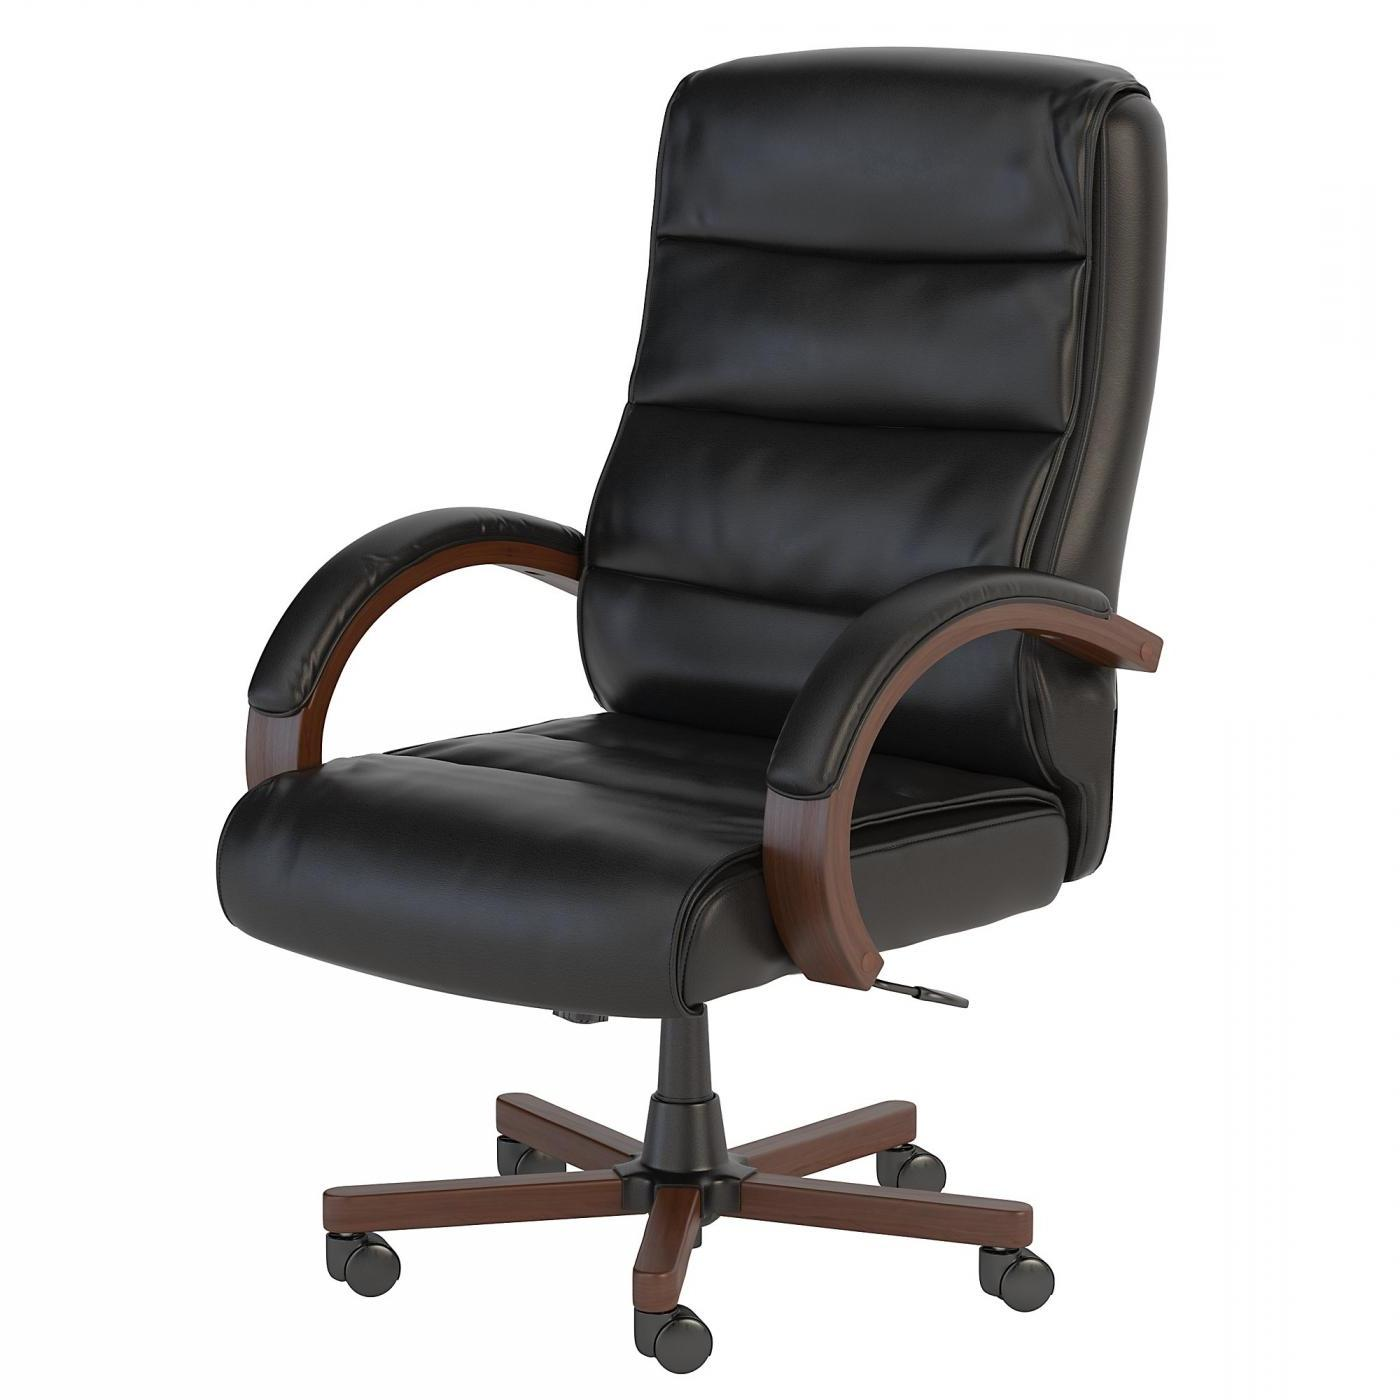 BUSH BUSINESS FURNITURE SOFT SENSE HIGH BACK LEATHER EXECUTIVE OFFICE CHAIR WITH WOOD ARMS. FREE SHIPPING.